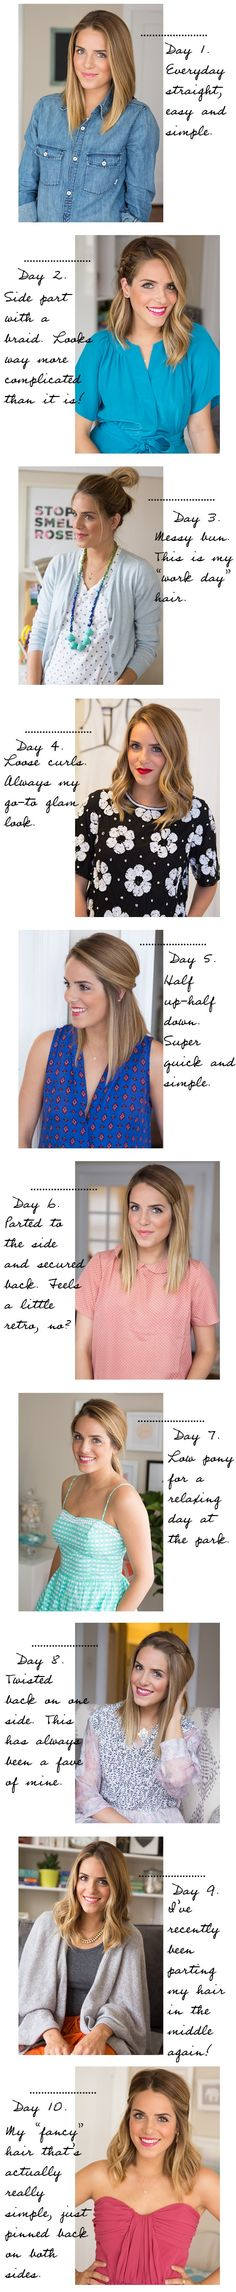 10 days of shoulder-length hair styles